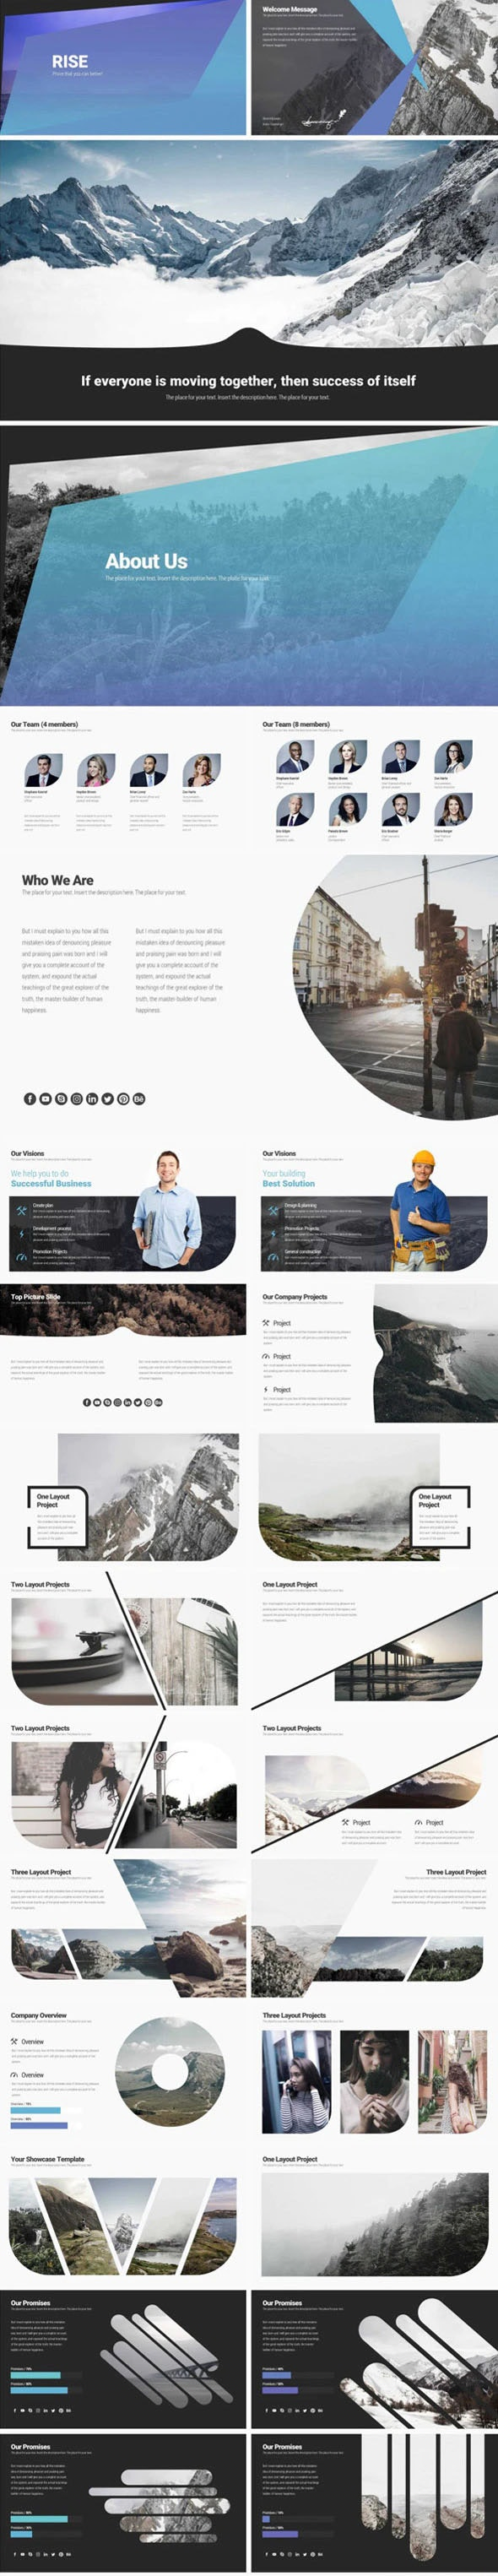 Business Rise - Business PowerPoint Templates